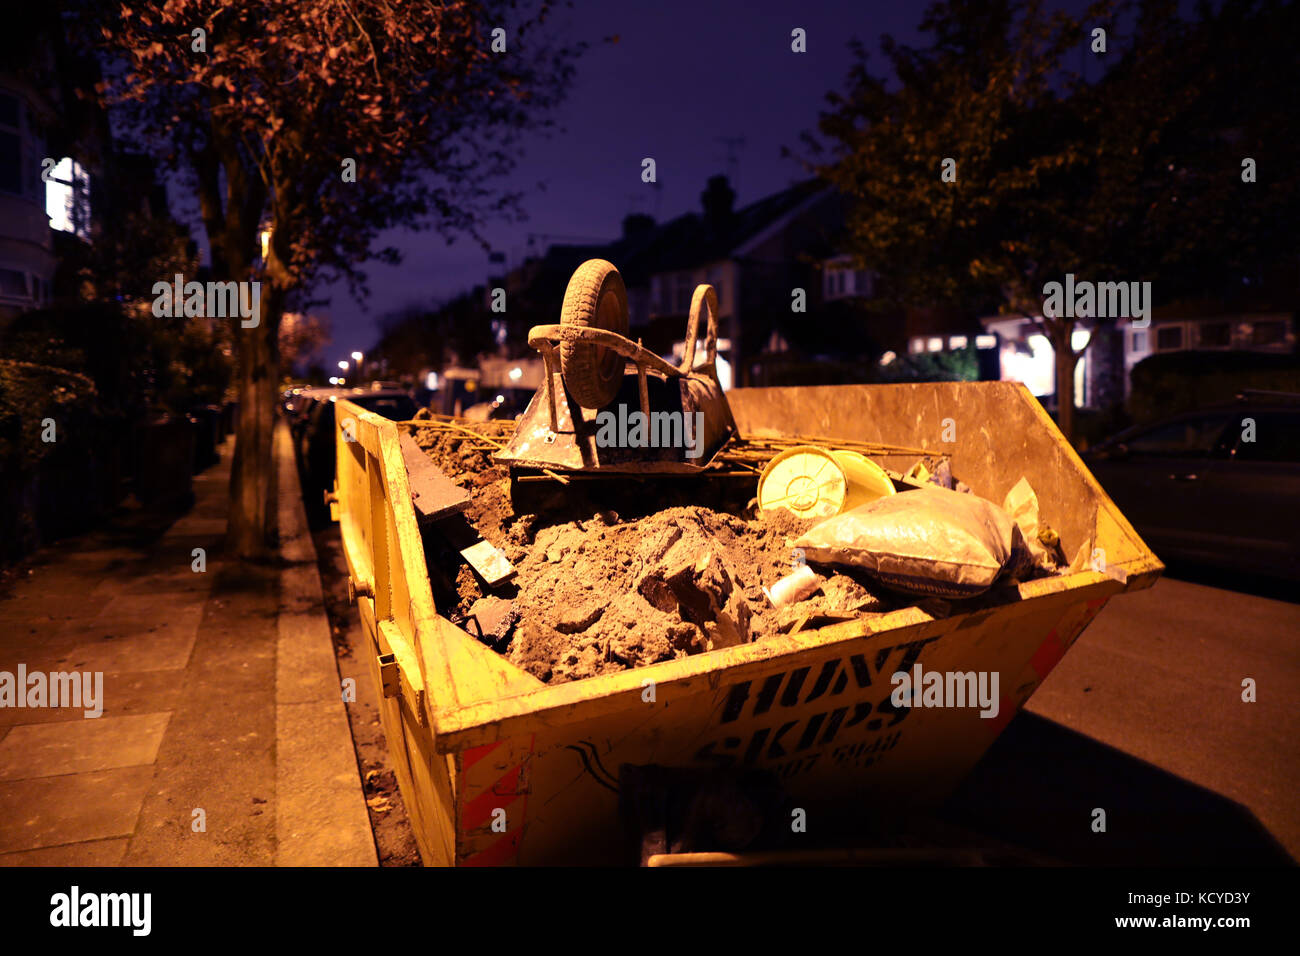 Wheelbarrow on a skip at night     picture by Gavin Rodgers/ Pixel8000 - Stock Image